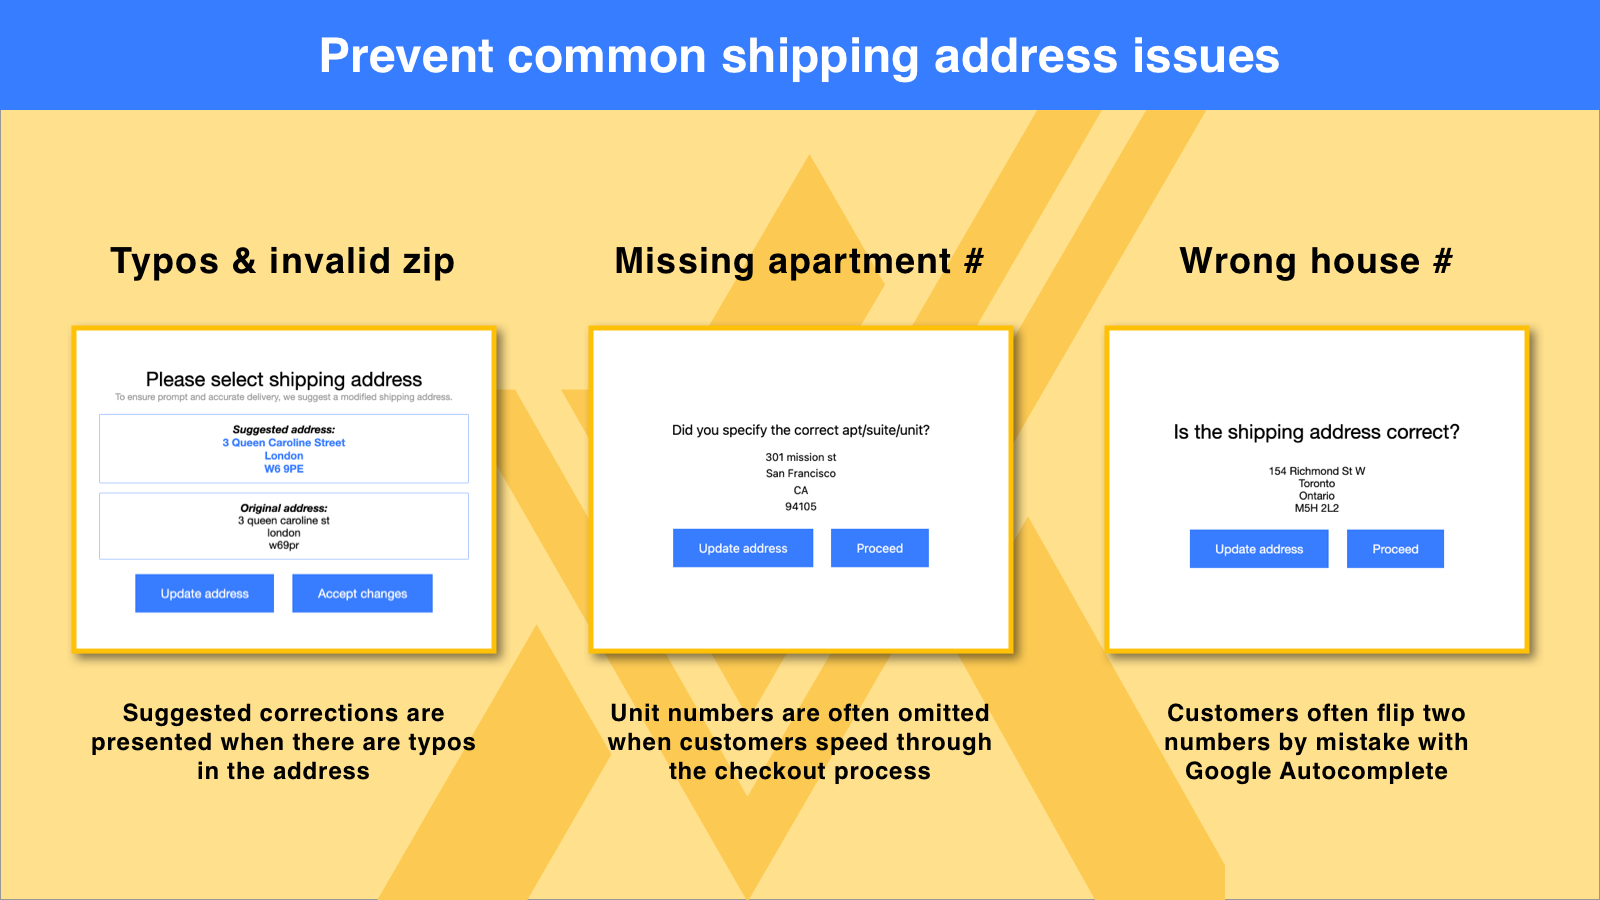 Prevent common shipping address issues